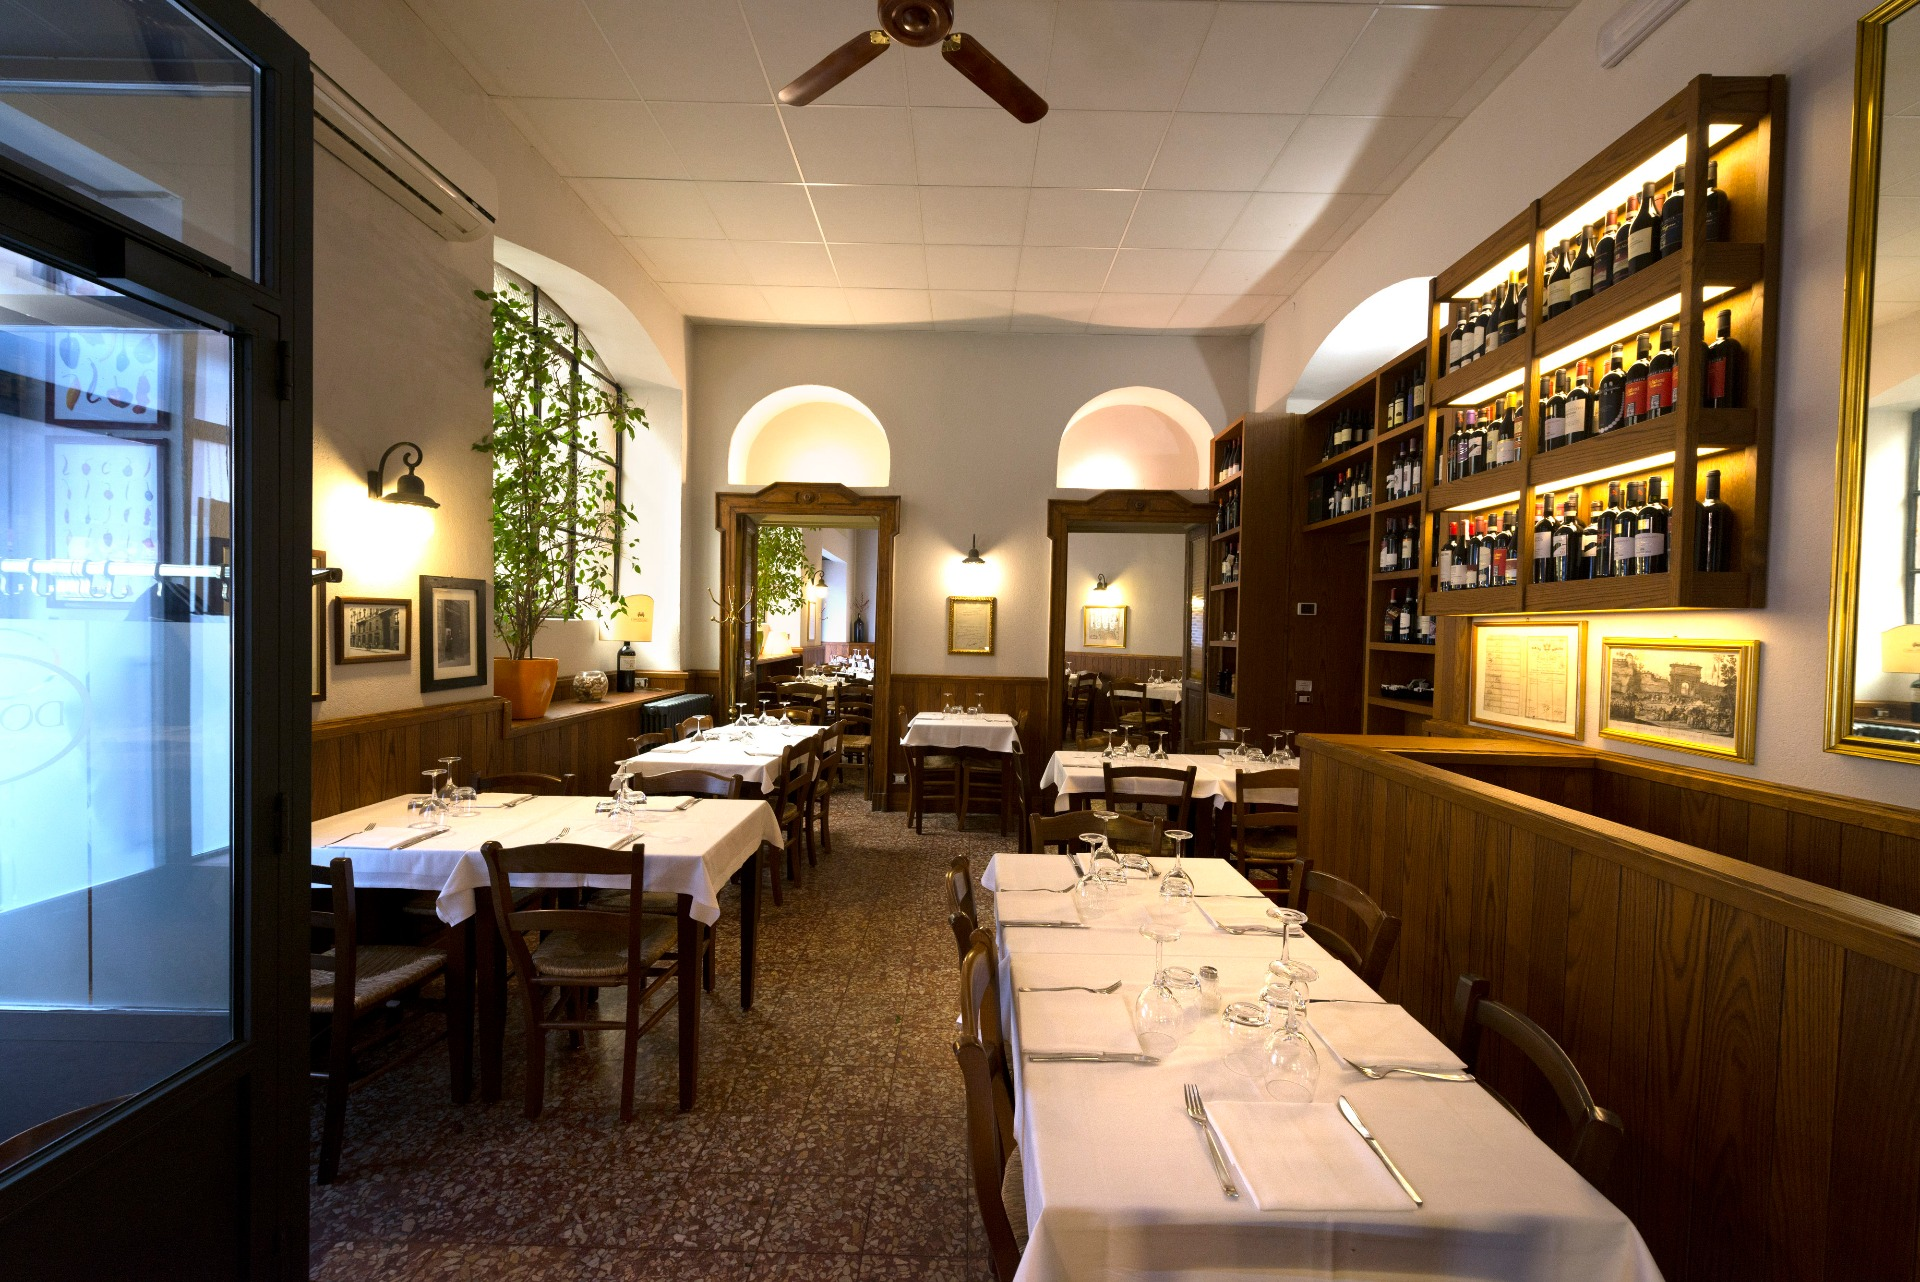 What About A Milan City Guide These Are The Top Restaurants In Town 13 milan city guide What About A Milan City Guide? These Are The Top Restaurants In Town! What About A Milan City Guide These Are The Top Restaurants In Town 13